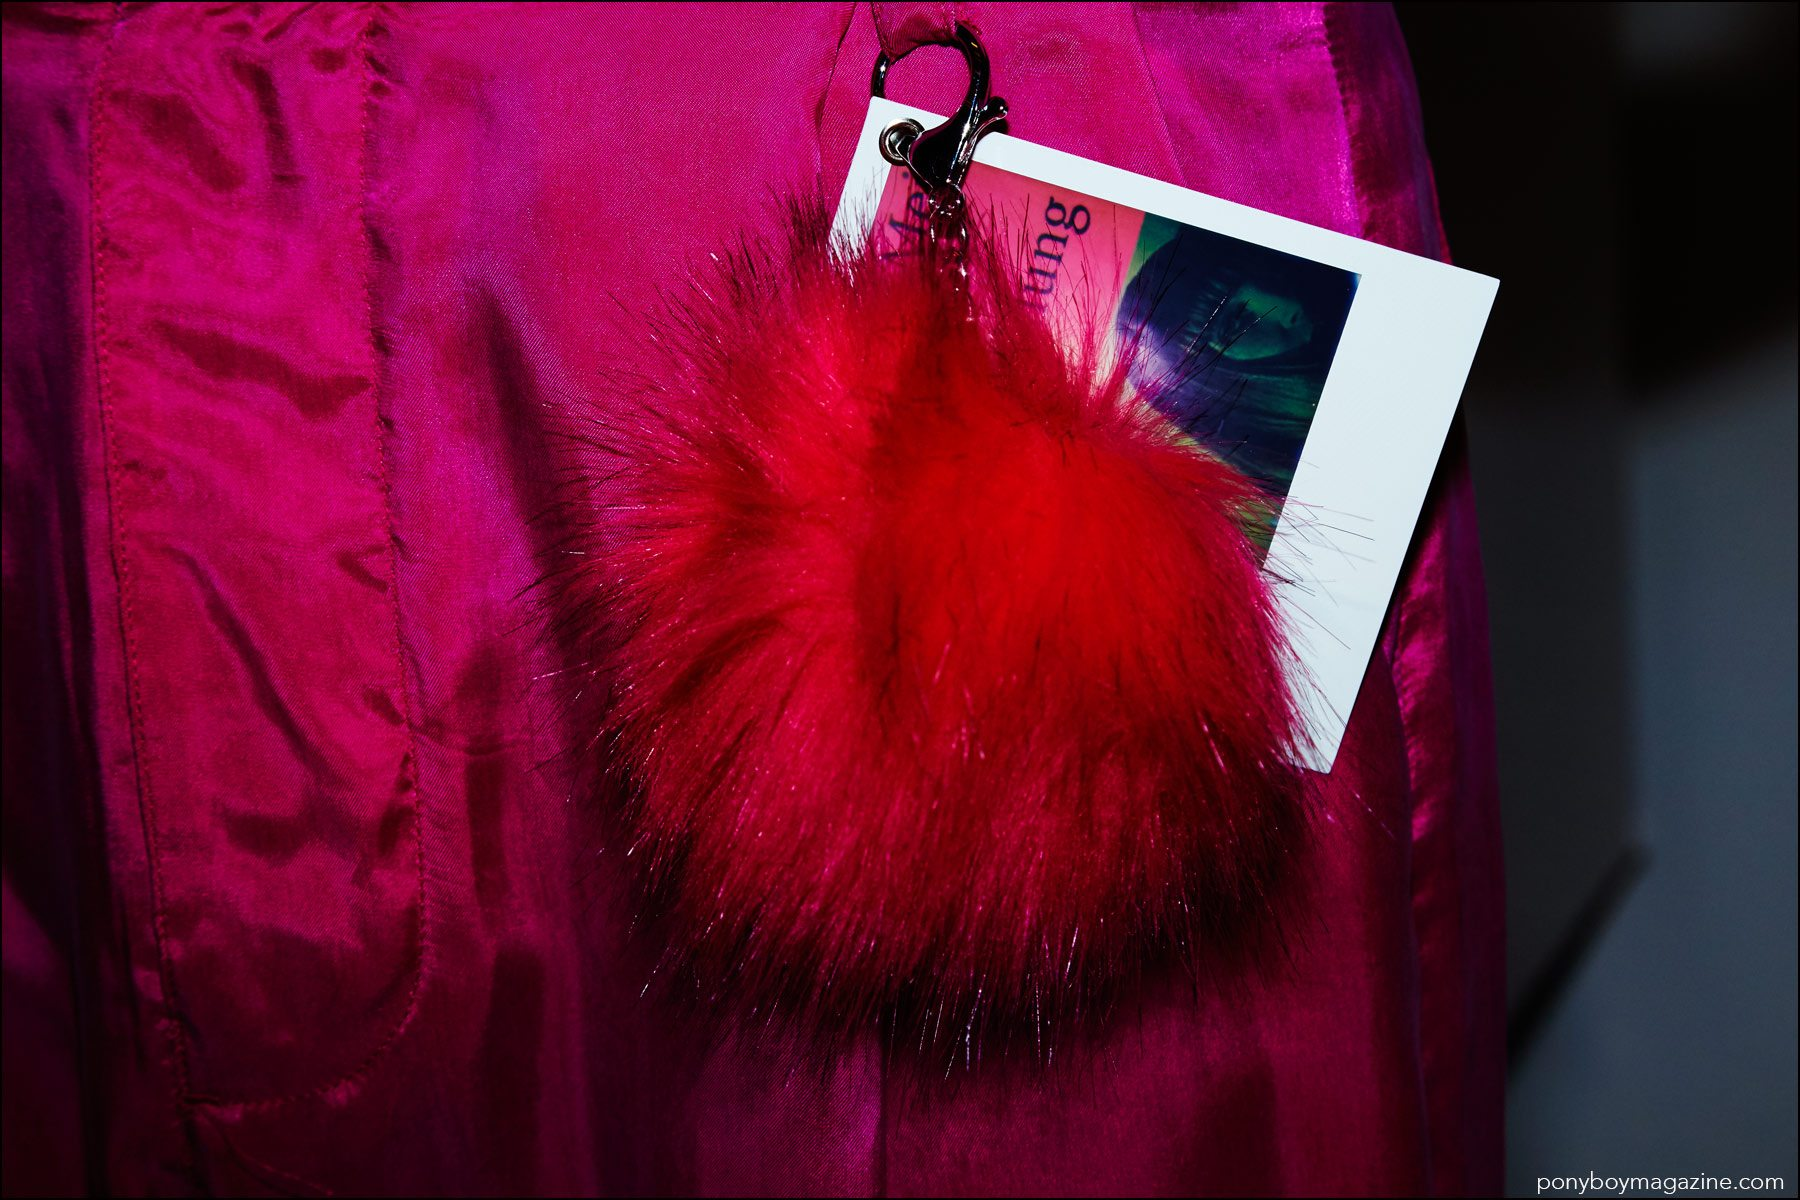 A detail shot of a fur pom-pom keychains and polaroid on men's trousers, photographed backstage at the Robert Geller Spring/Summer 2017 menswear show. Photography by Alexander Thompson for Ponyboy magazine NY.